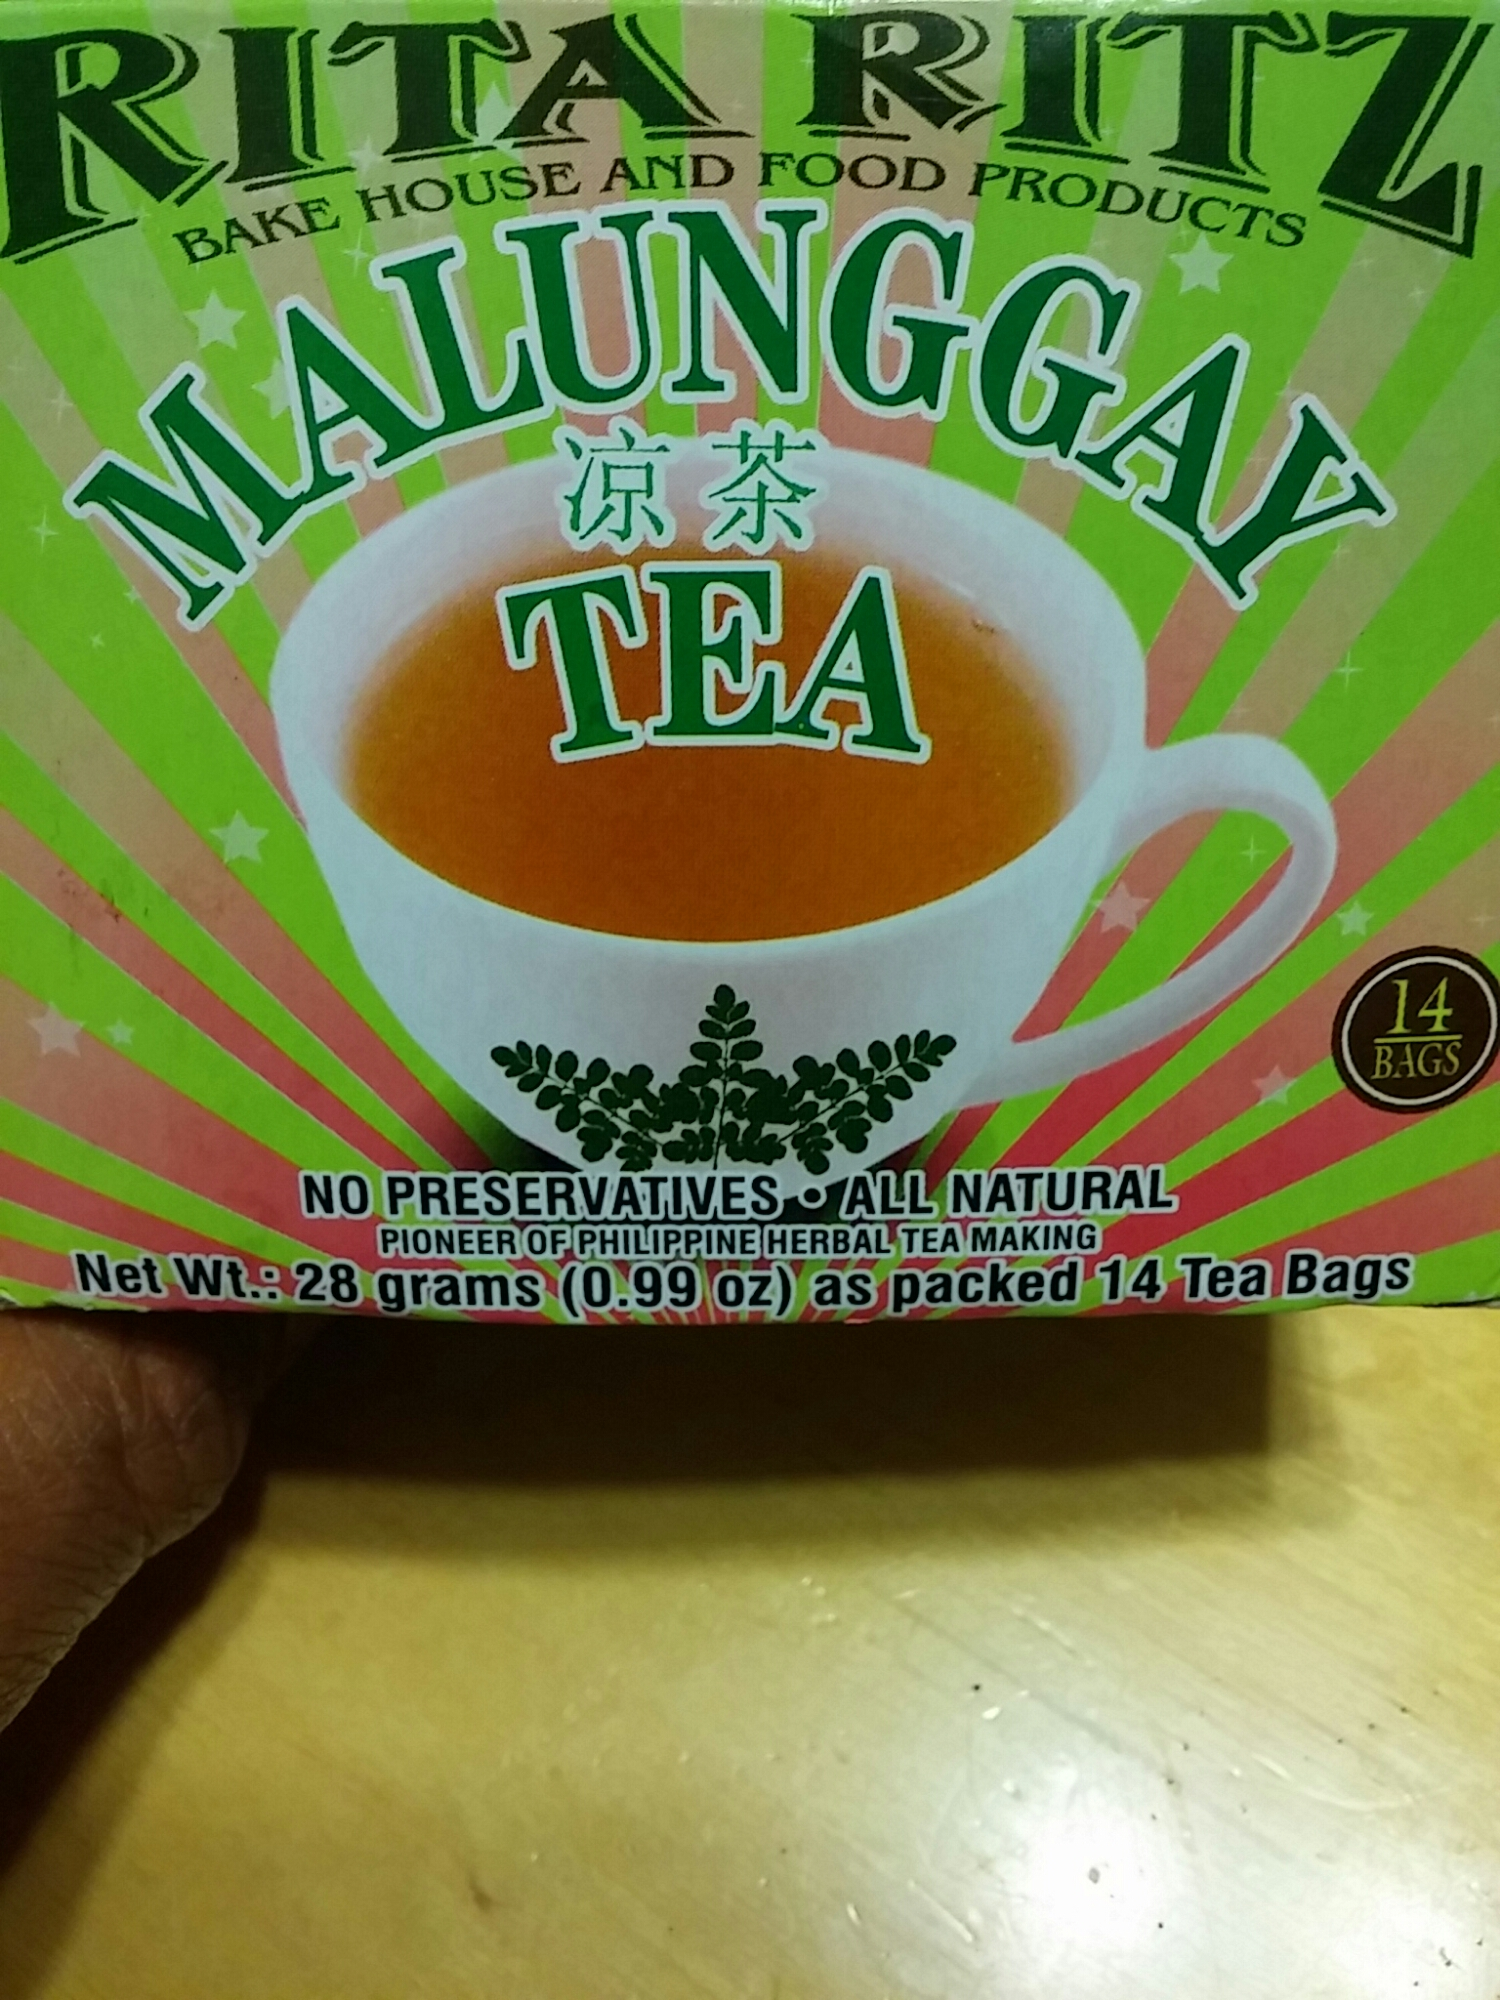 Tea box from Mom & Pop Filipino store in Milpitas, CA.